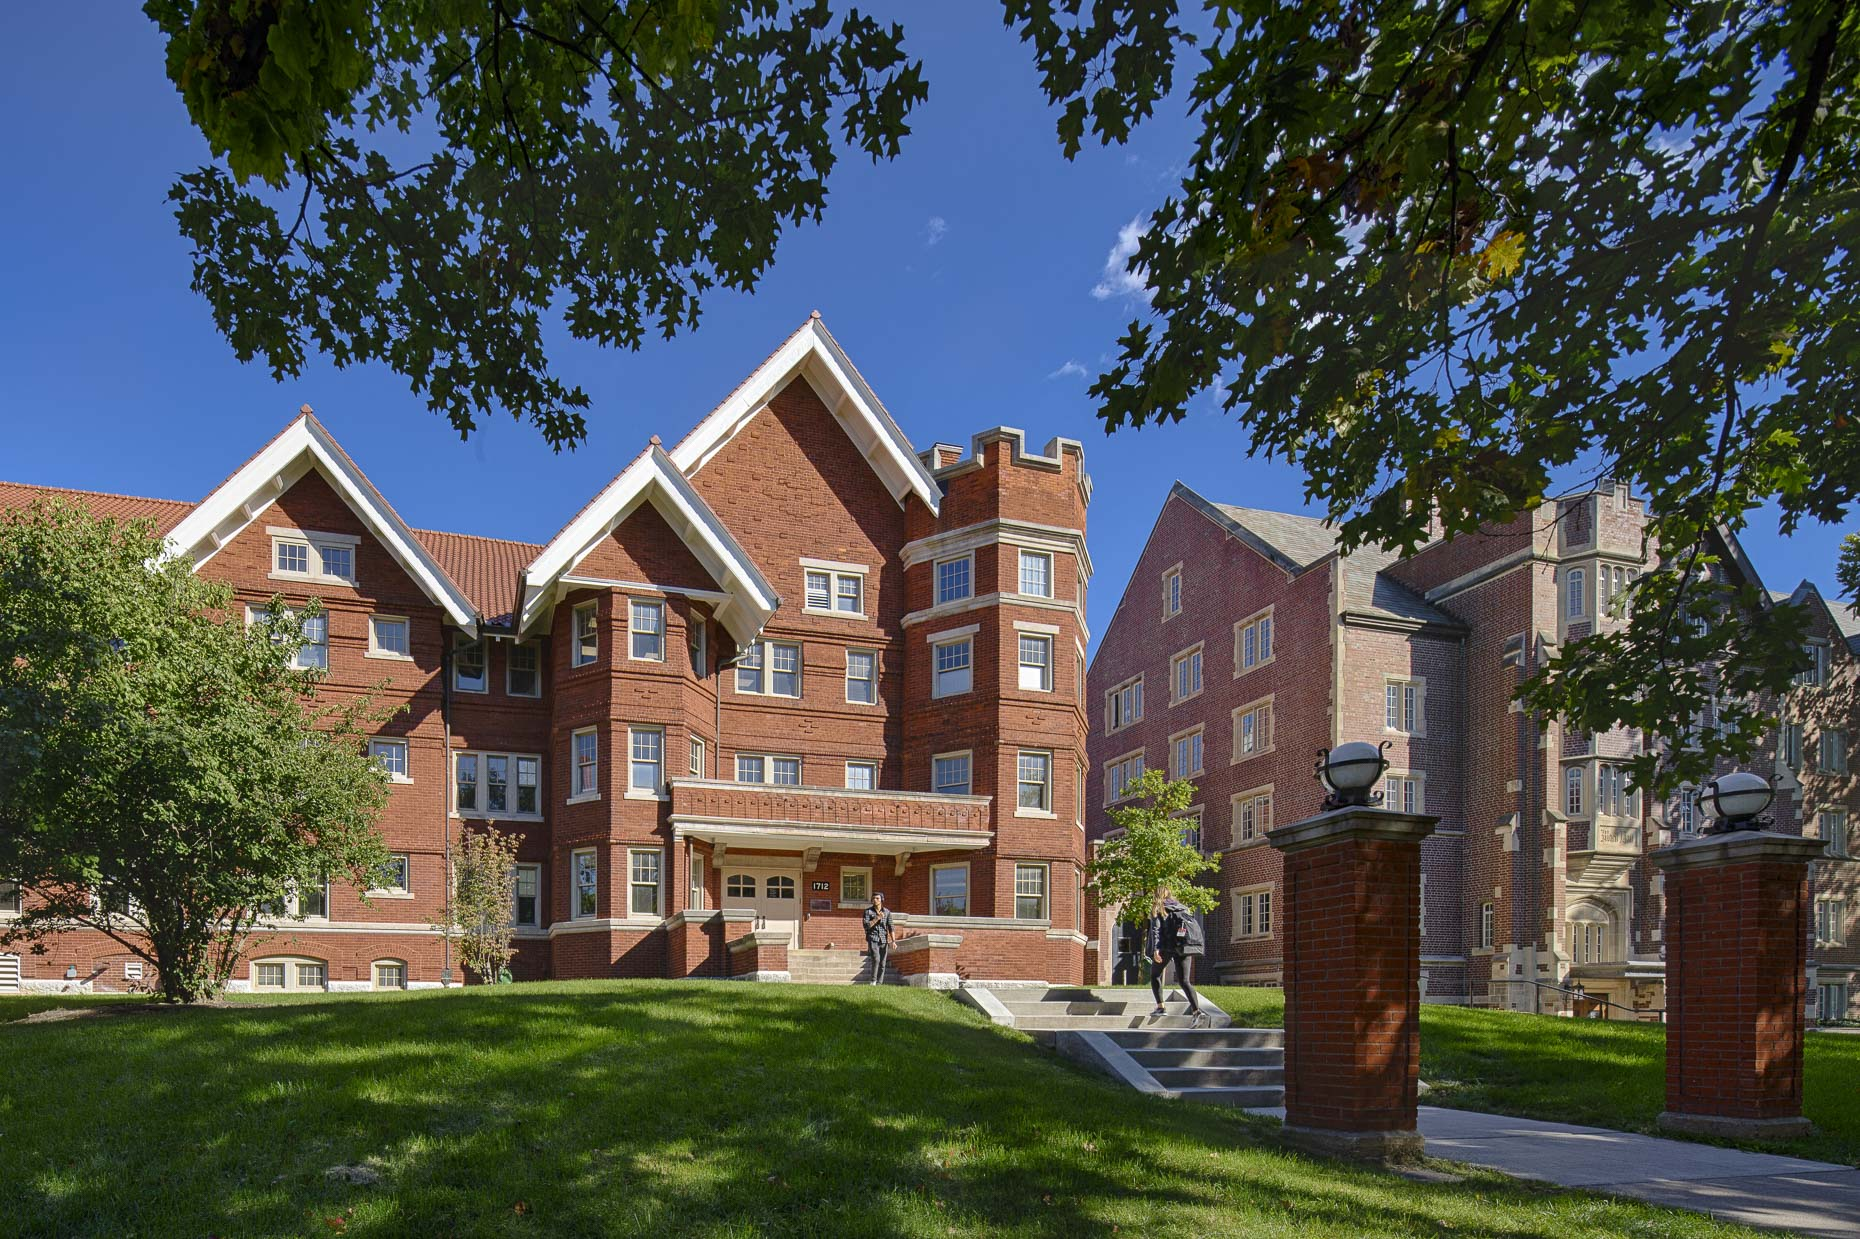 OSU Oxley Hall by Acock Associates photographed by Lauren K Davis based in Columbus, Ohio